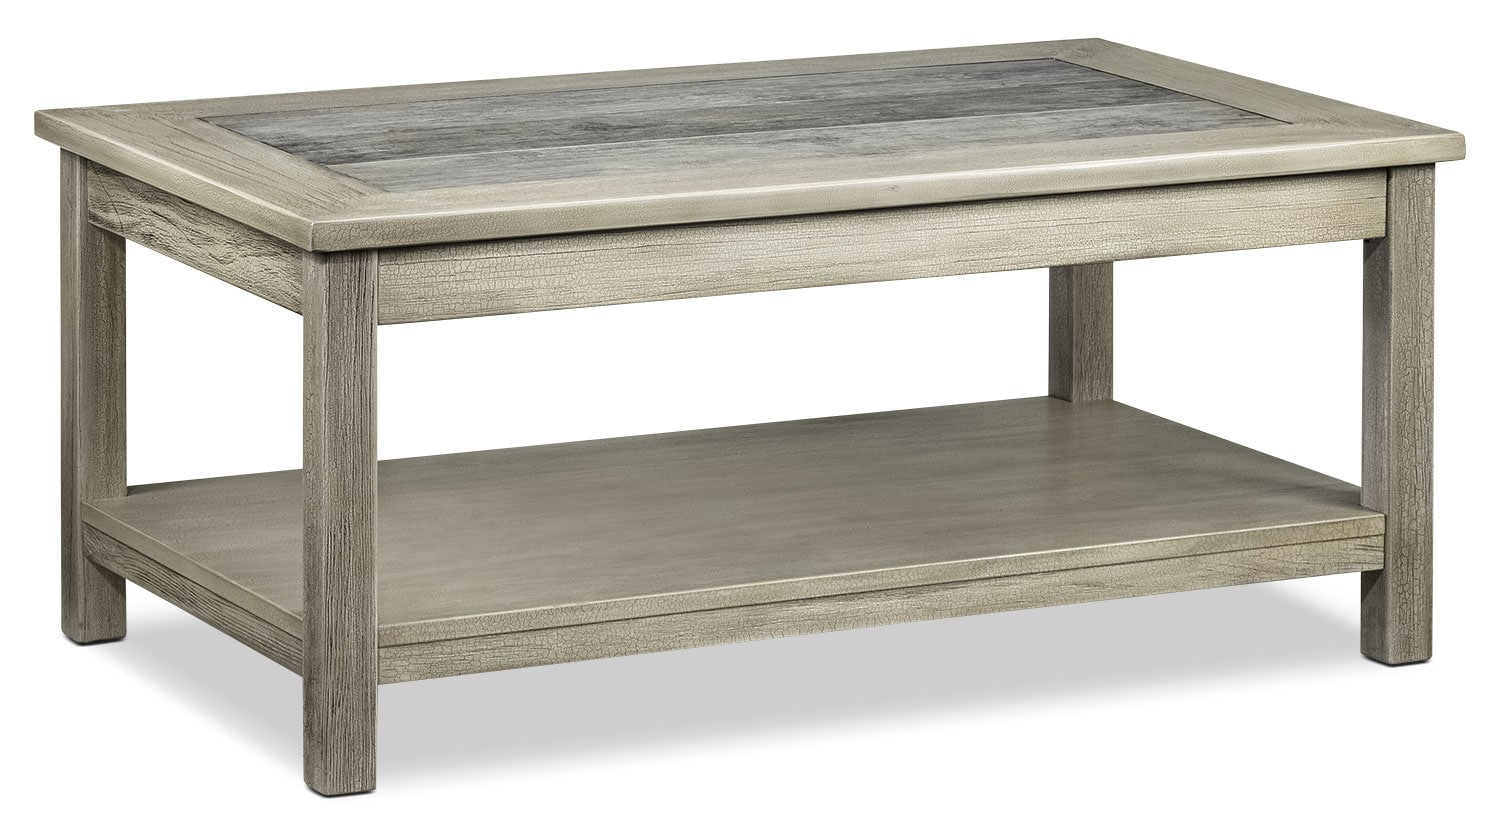 Thomas Coffee Table - Natural Beige